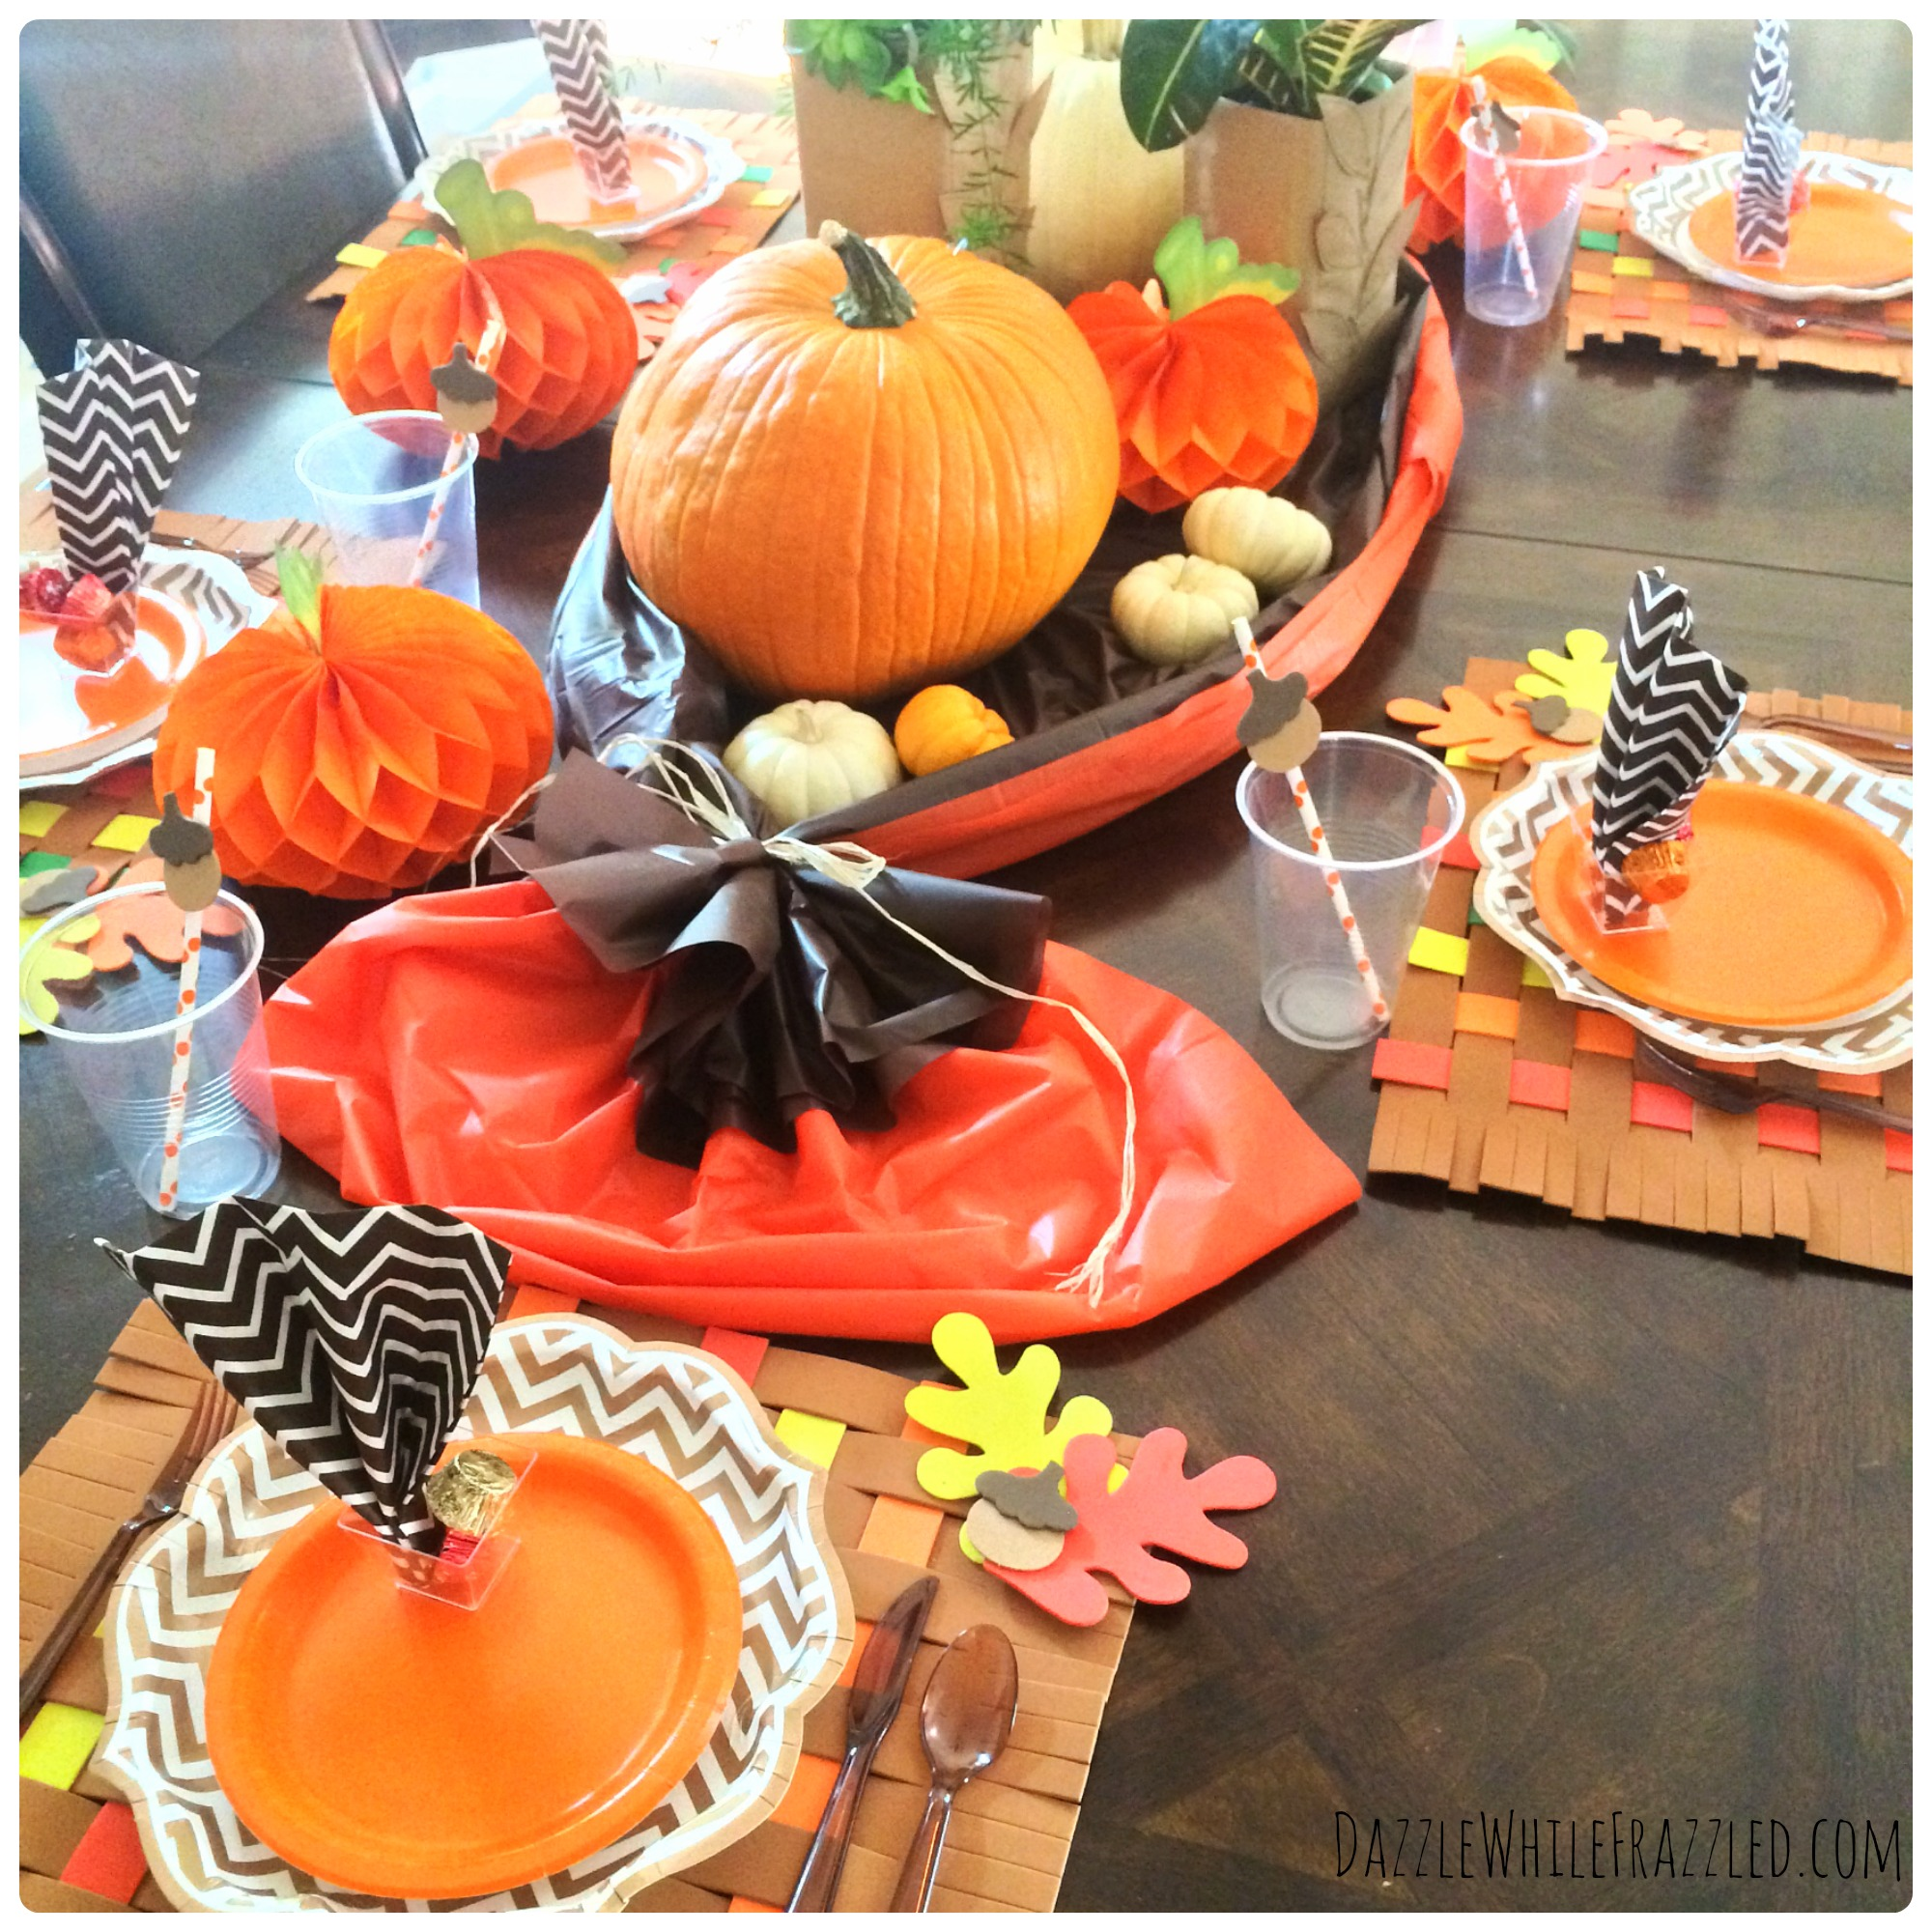 How To Make An Easy Clean Thanksgiving Table Dazzle While Frazzled